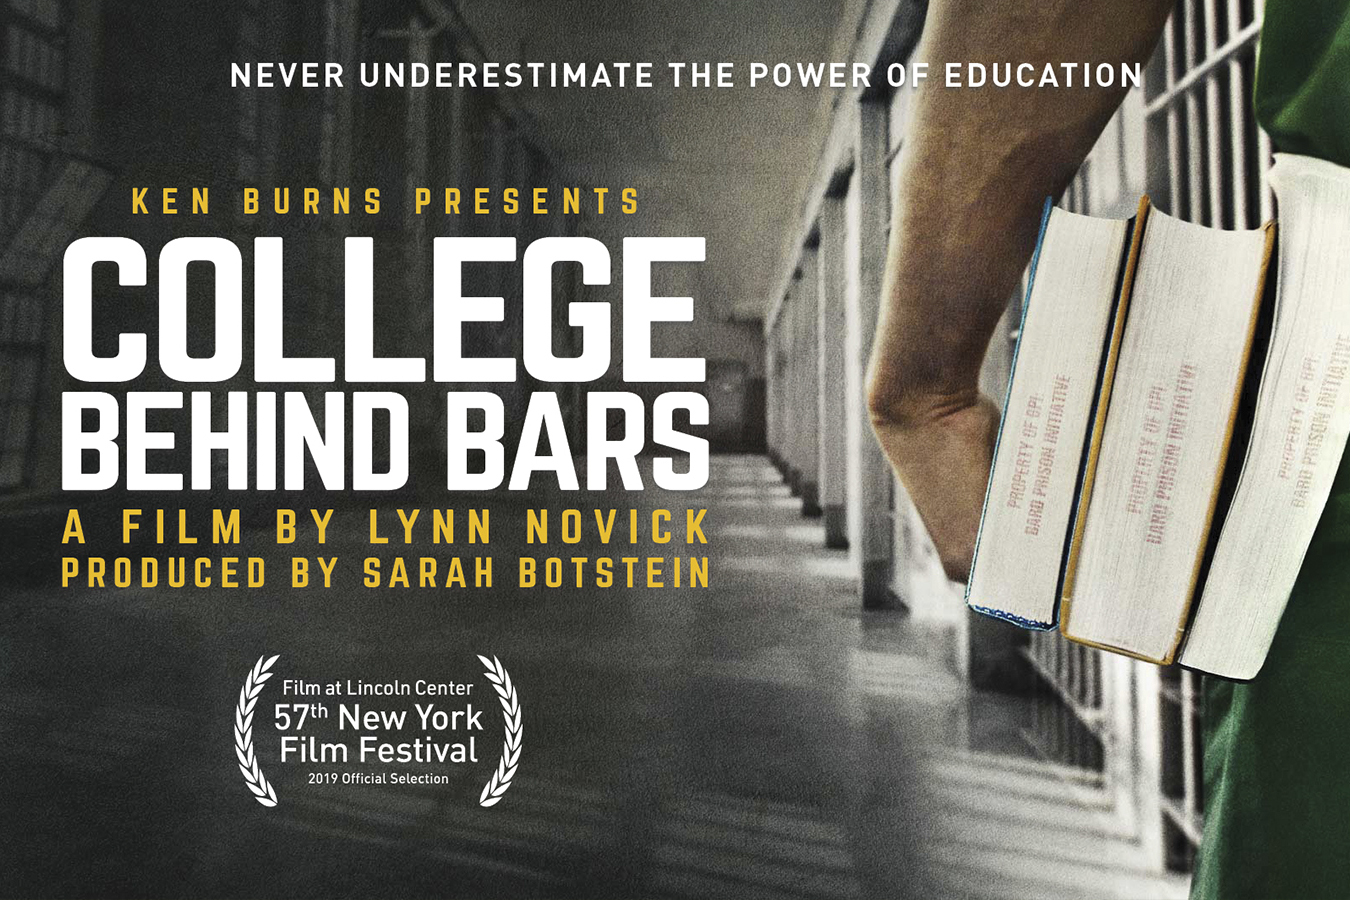 Special Preview of the New Documentary College Behind Bars